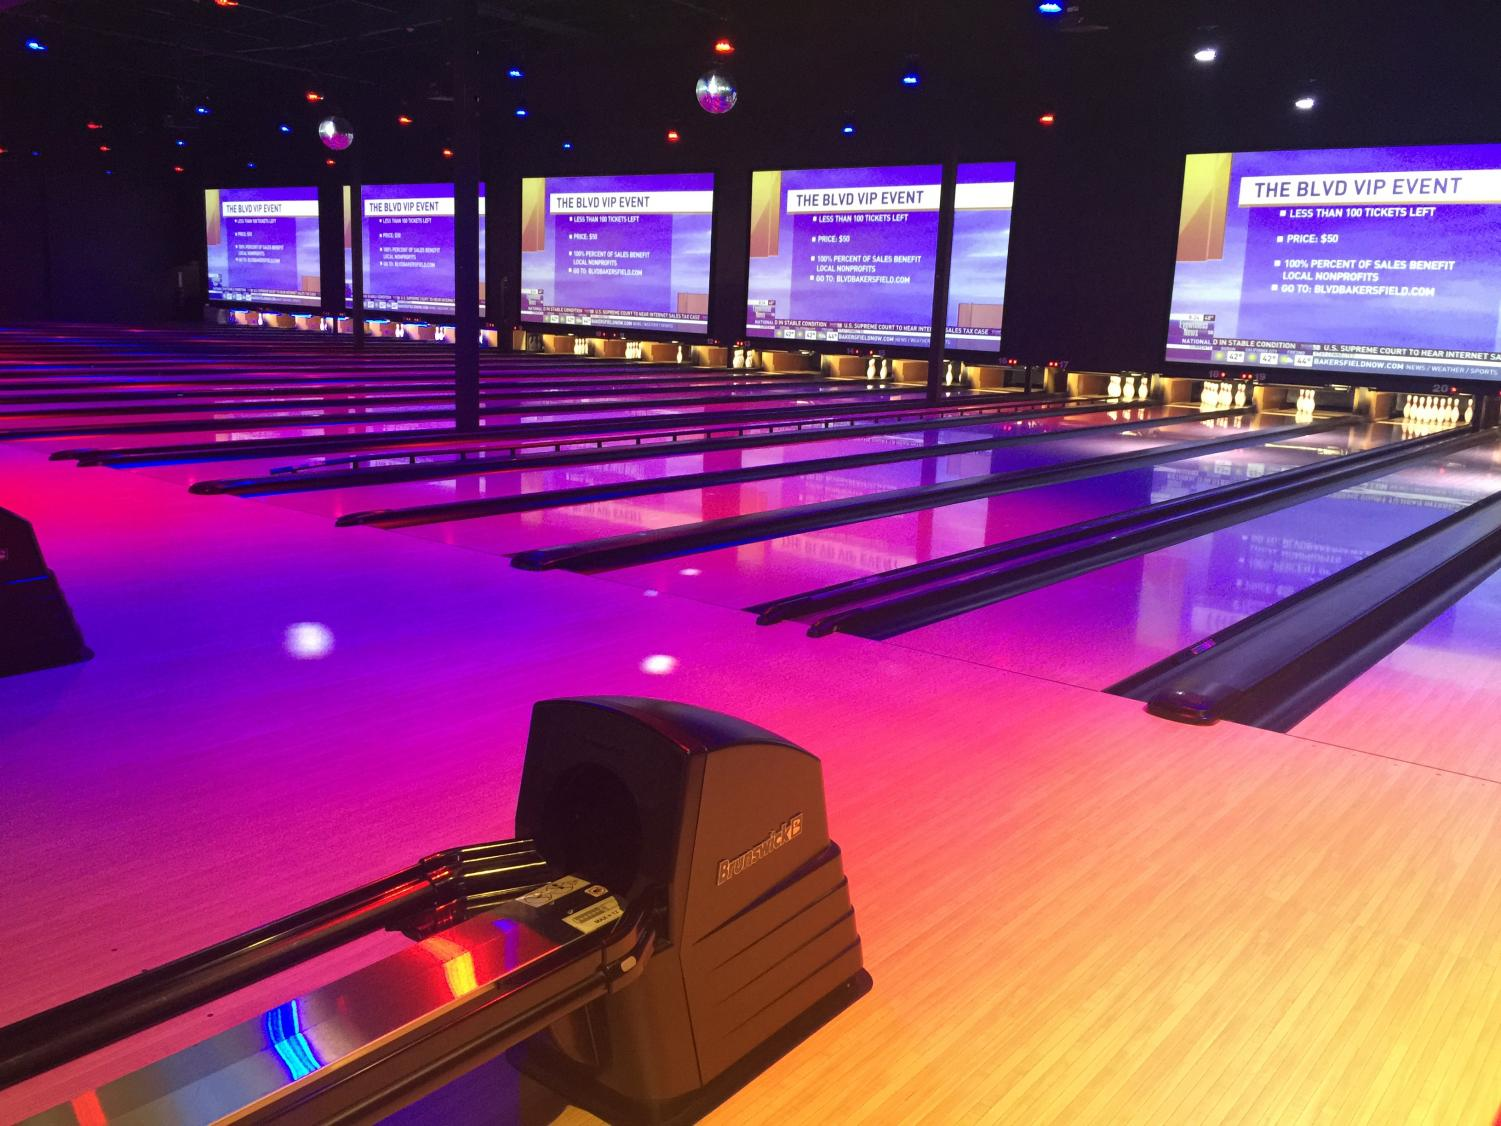 Bowling lanes are lit up at the BLVD, hotspot entertainment center on Buck Ownens Blvd.